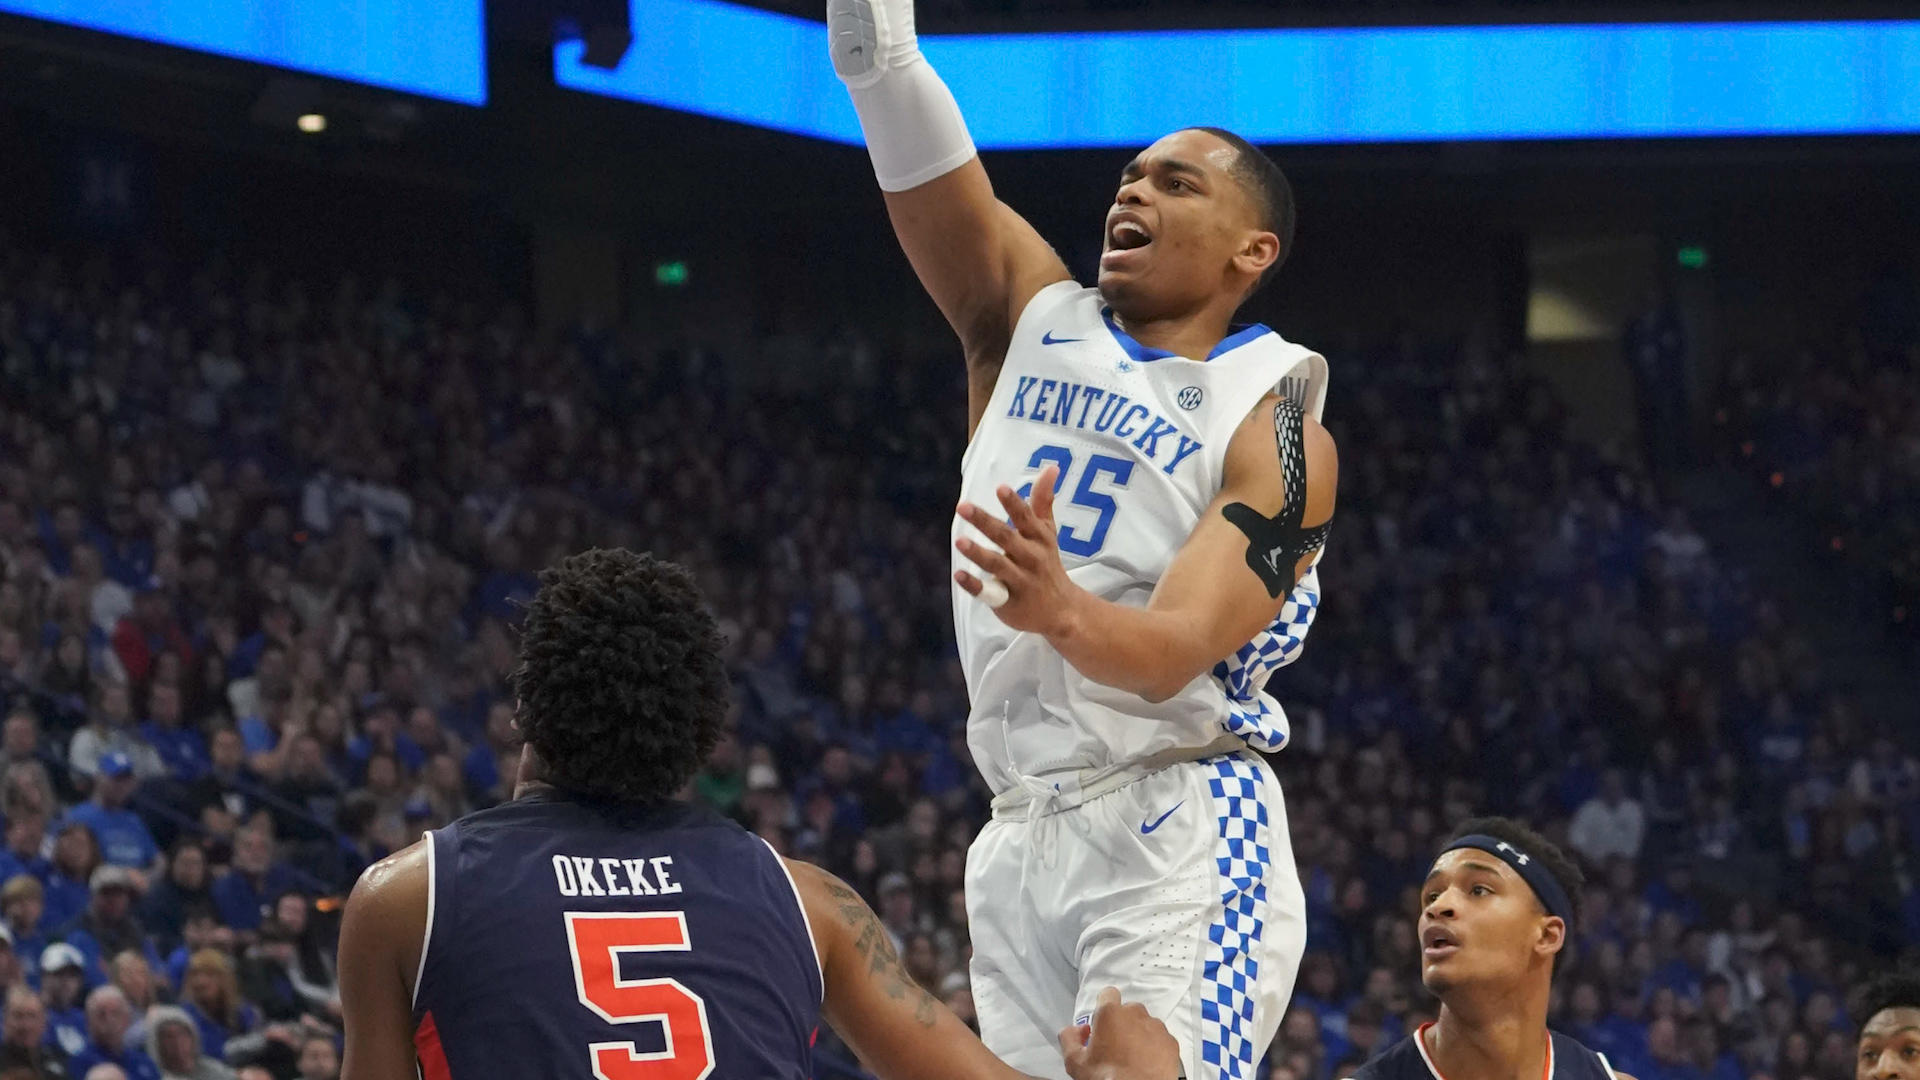 Kentucky vs. Auburn score: No. 4 Wildcats cruise to another easy SEC win over Tigers